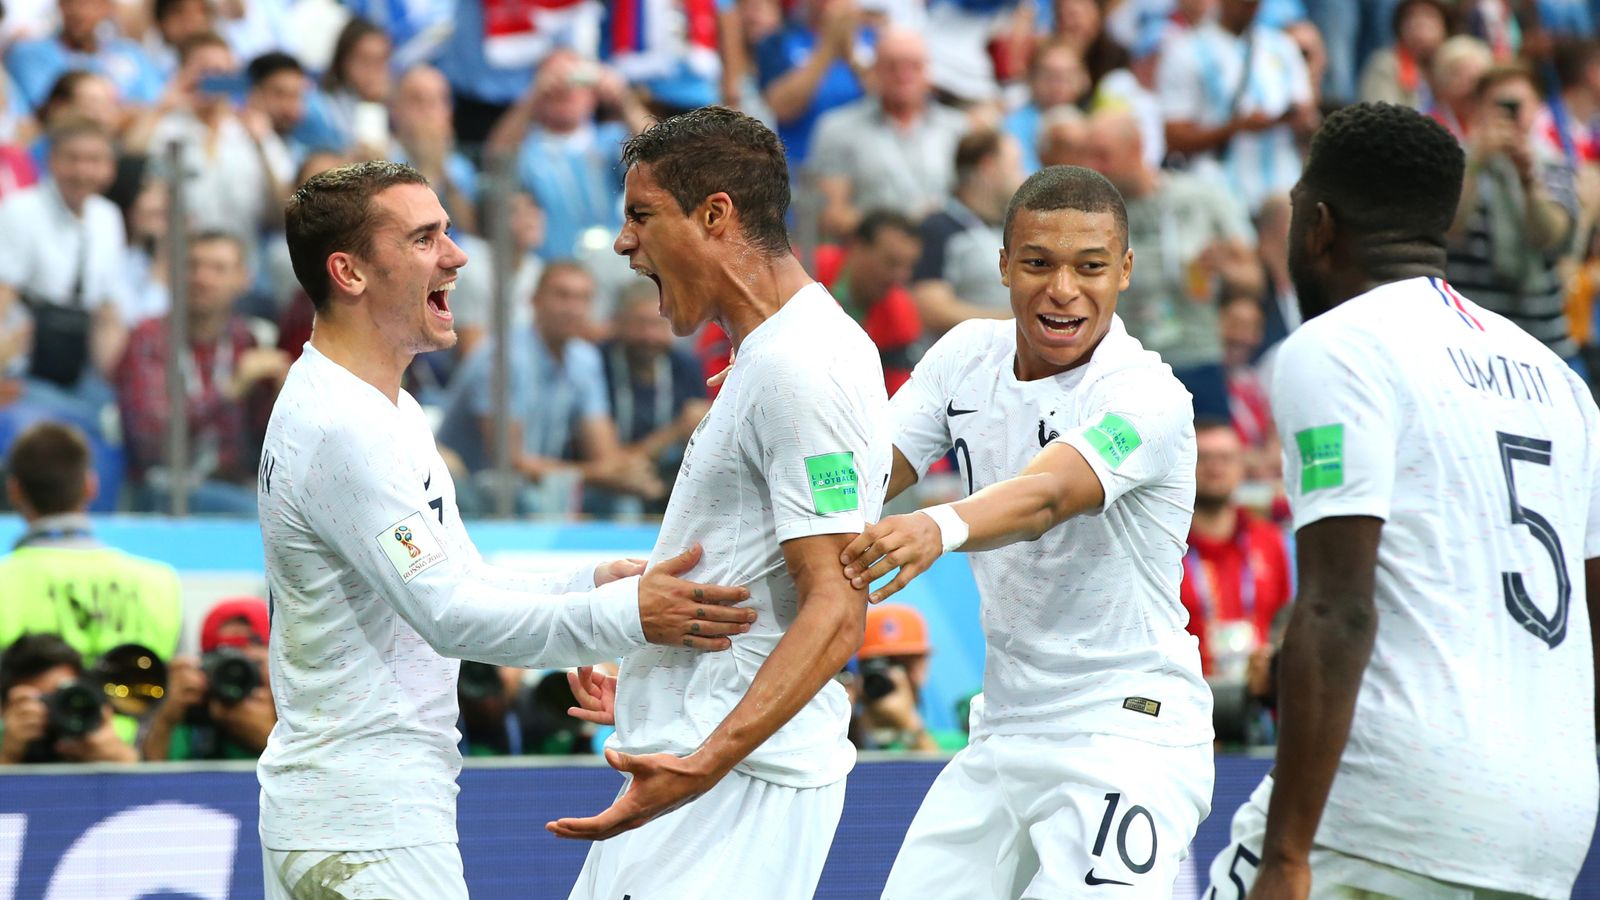 Uruguay 0 - 2 France - Match Report & Highlights